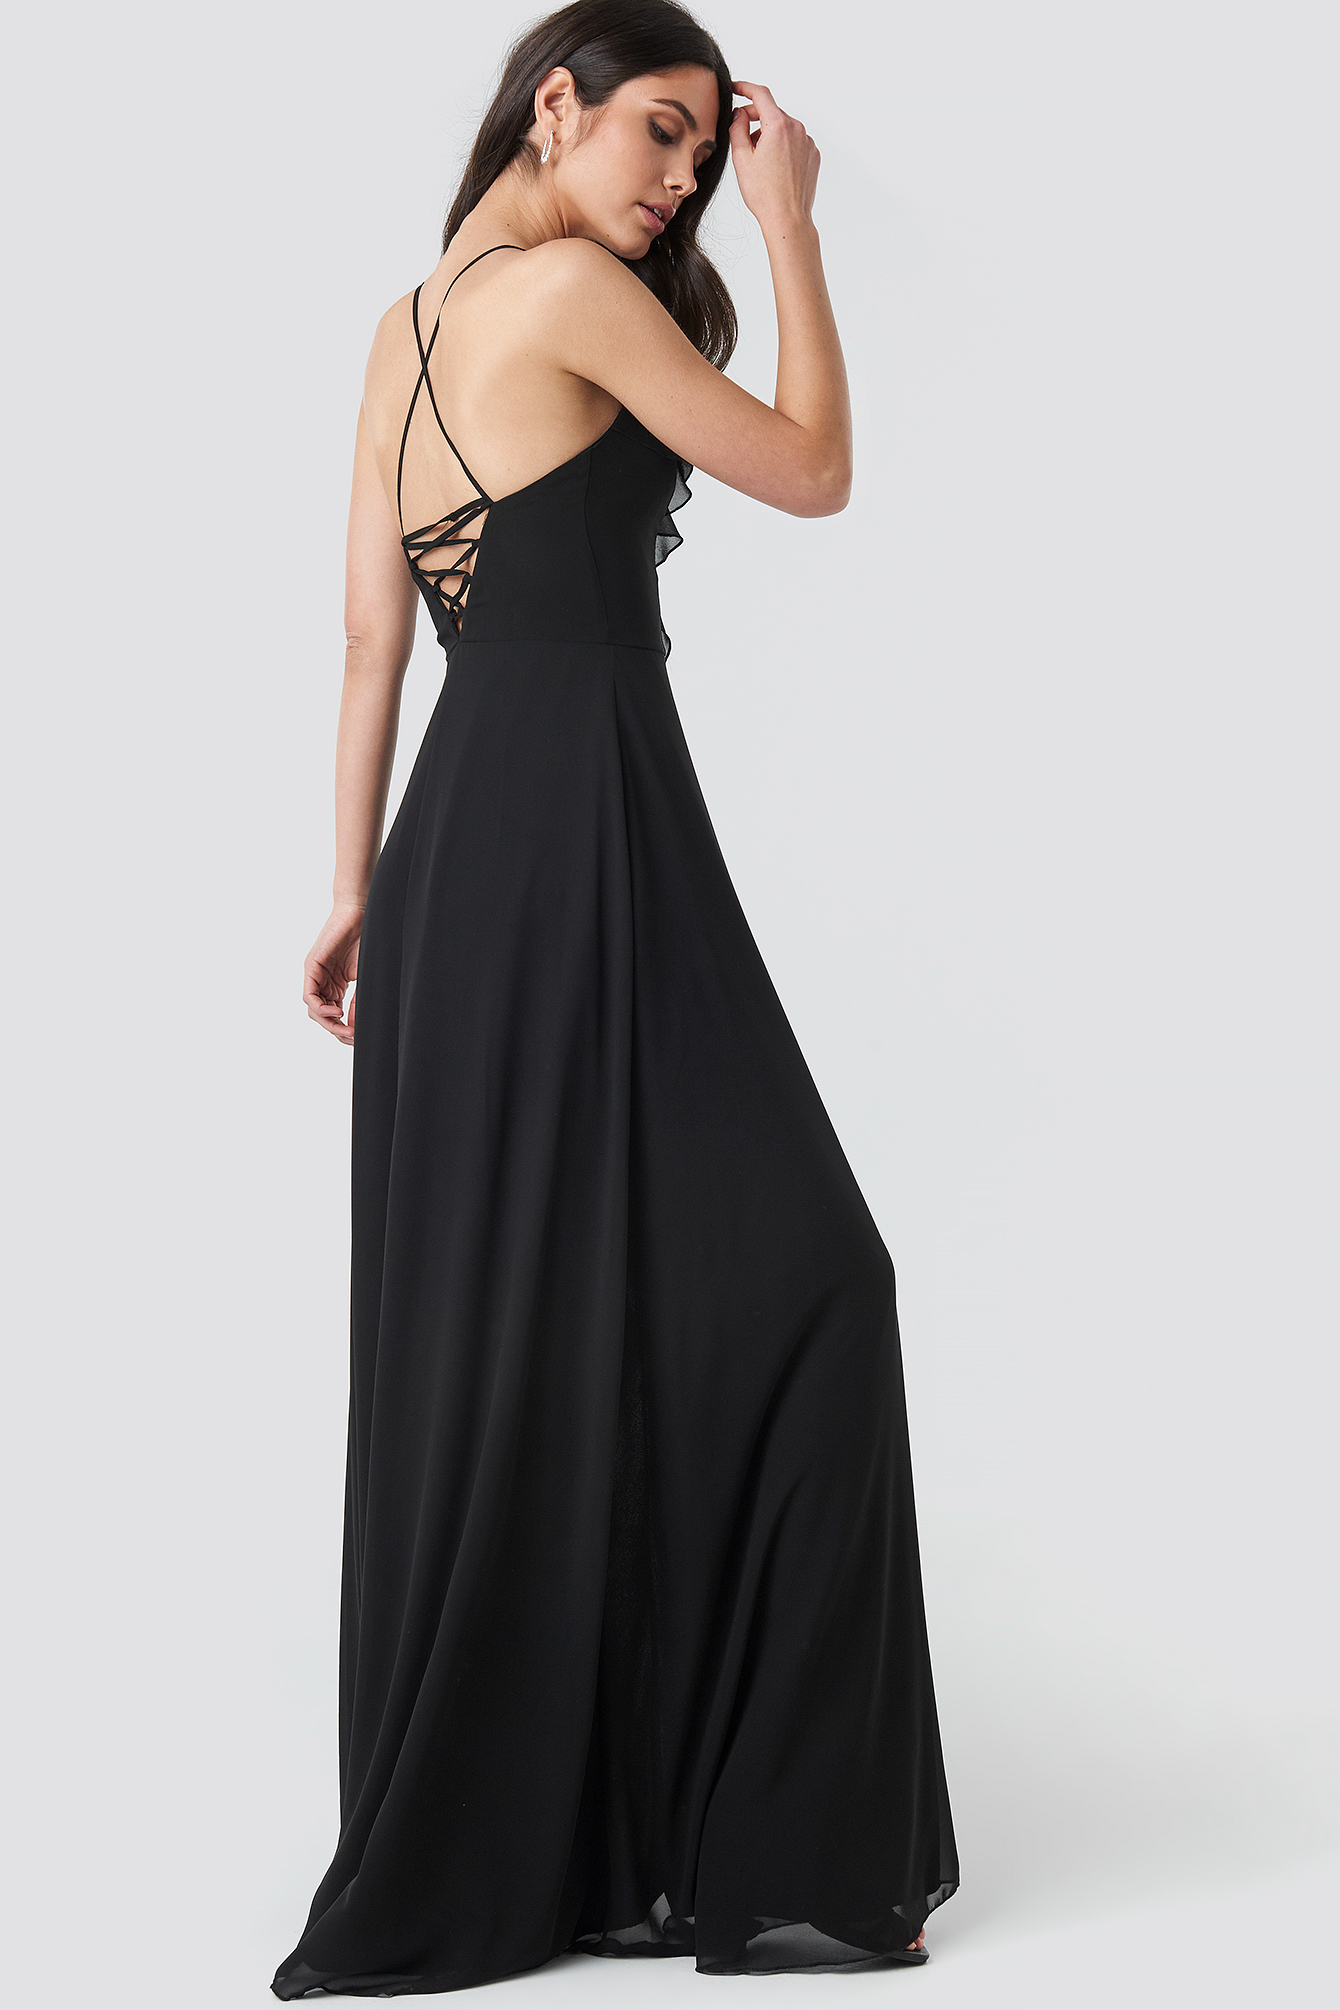 Frilly Evening Dress Gown NA-KD.COM